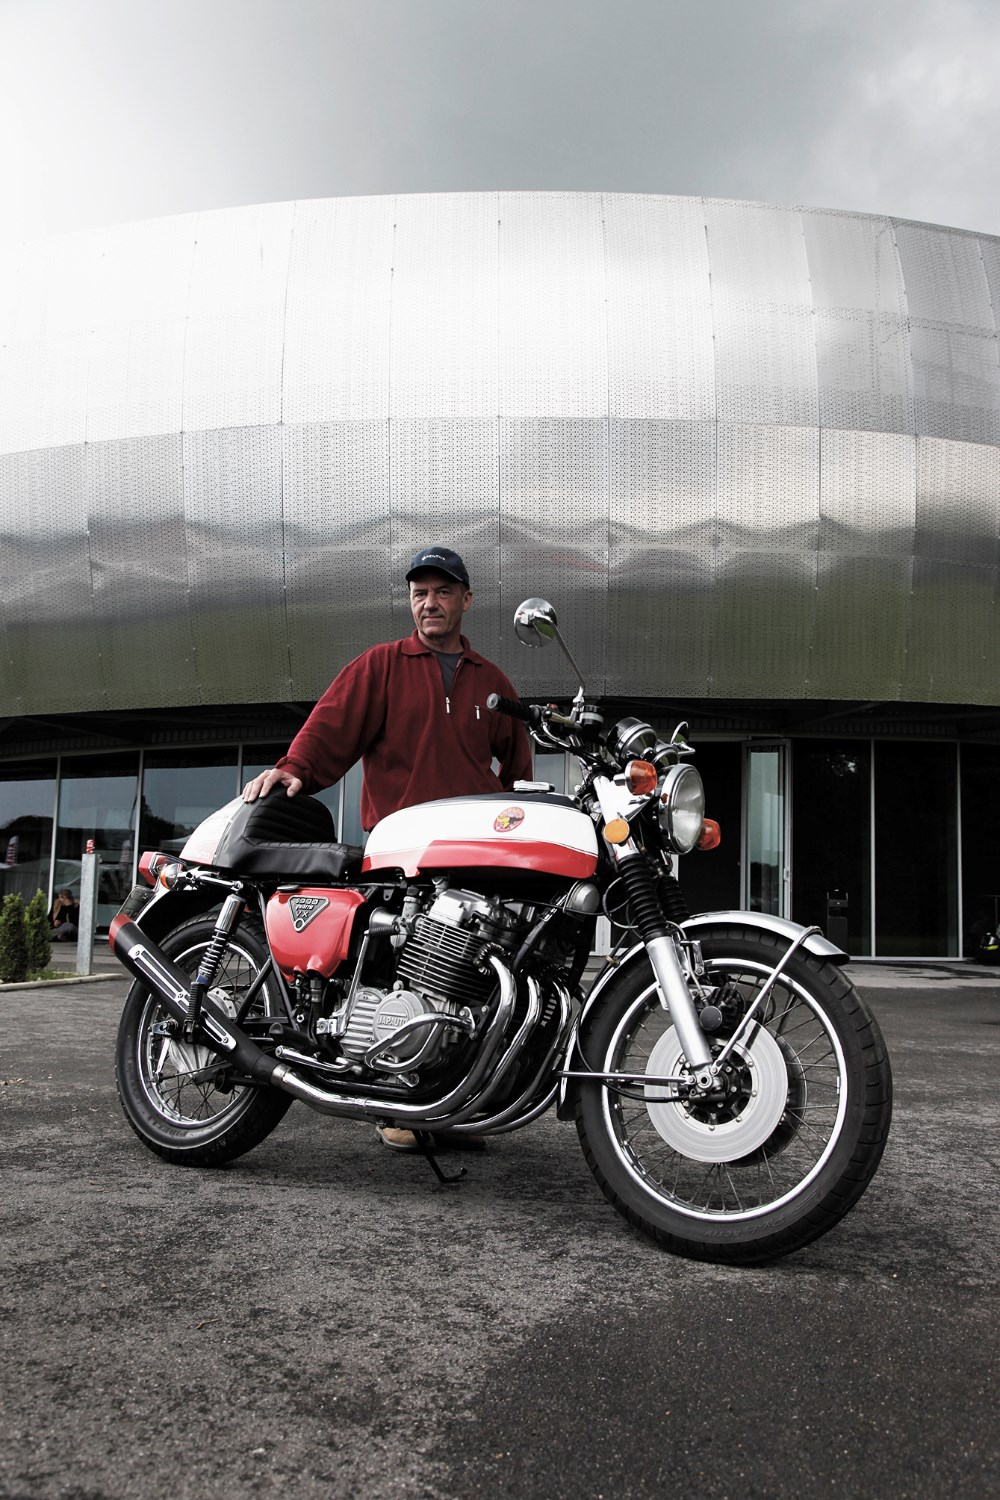 Paris-based Honda specialists  Japauto built Bol d'Or winning bikes and sold   kits to transform the CB750 into a big-bore   1000 like this one owned by Patrick Massé